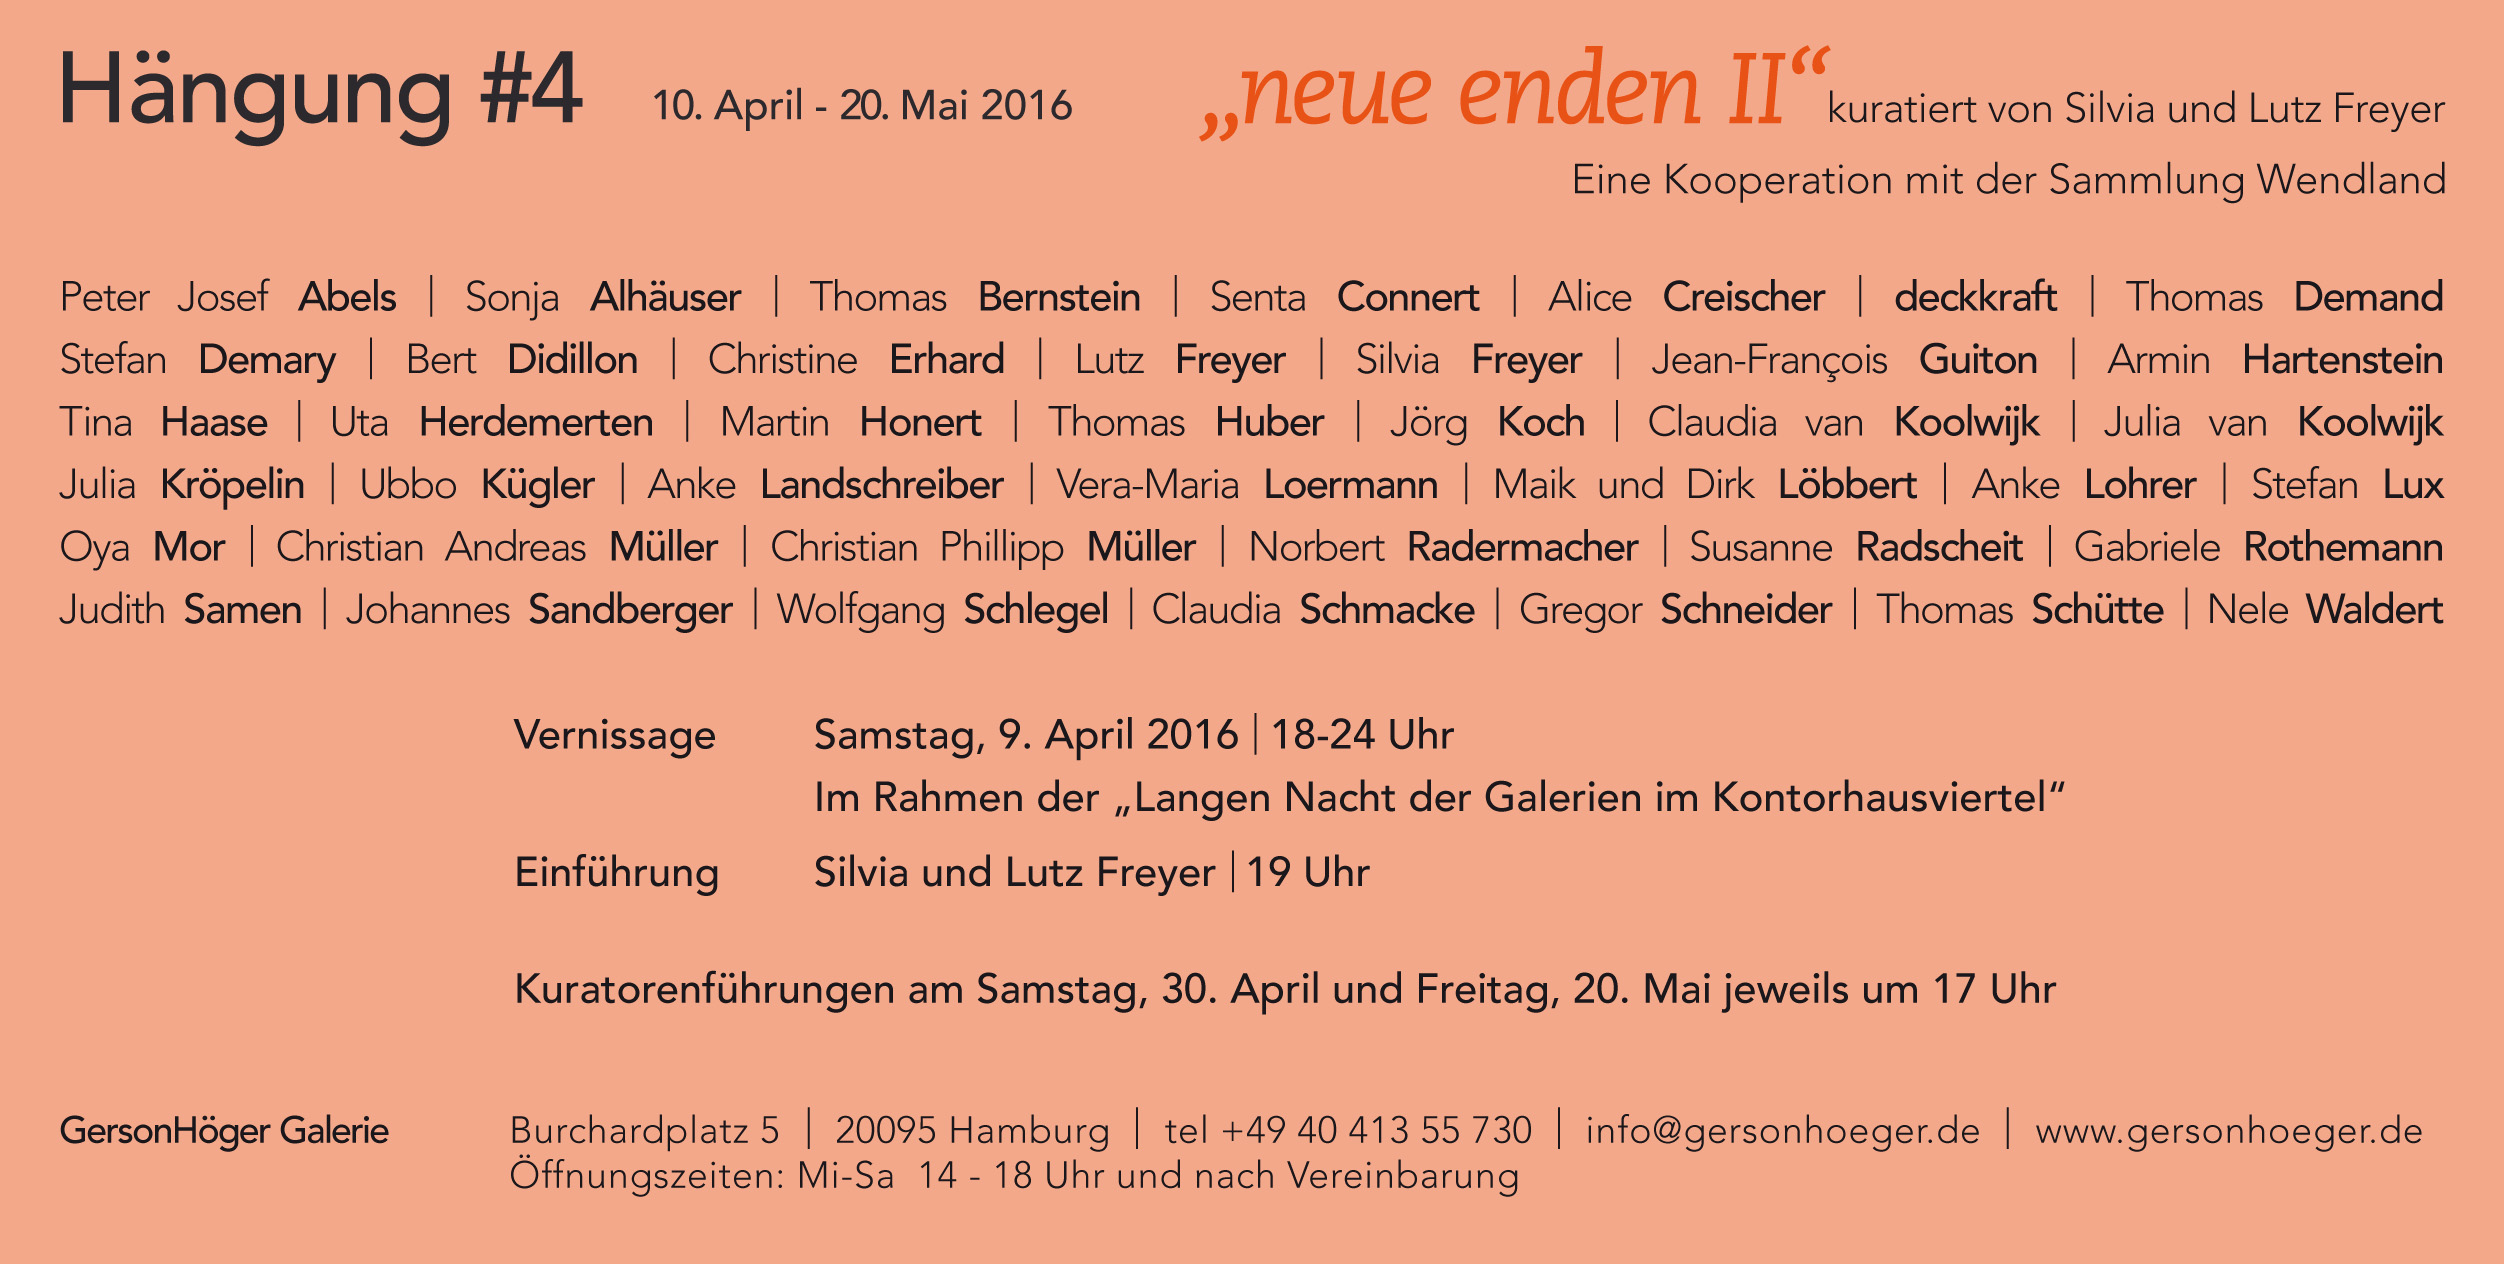 H#4_Flyer_neue enden II_text